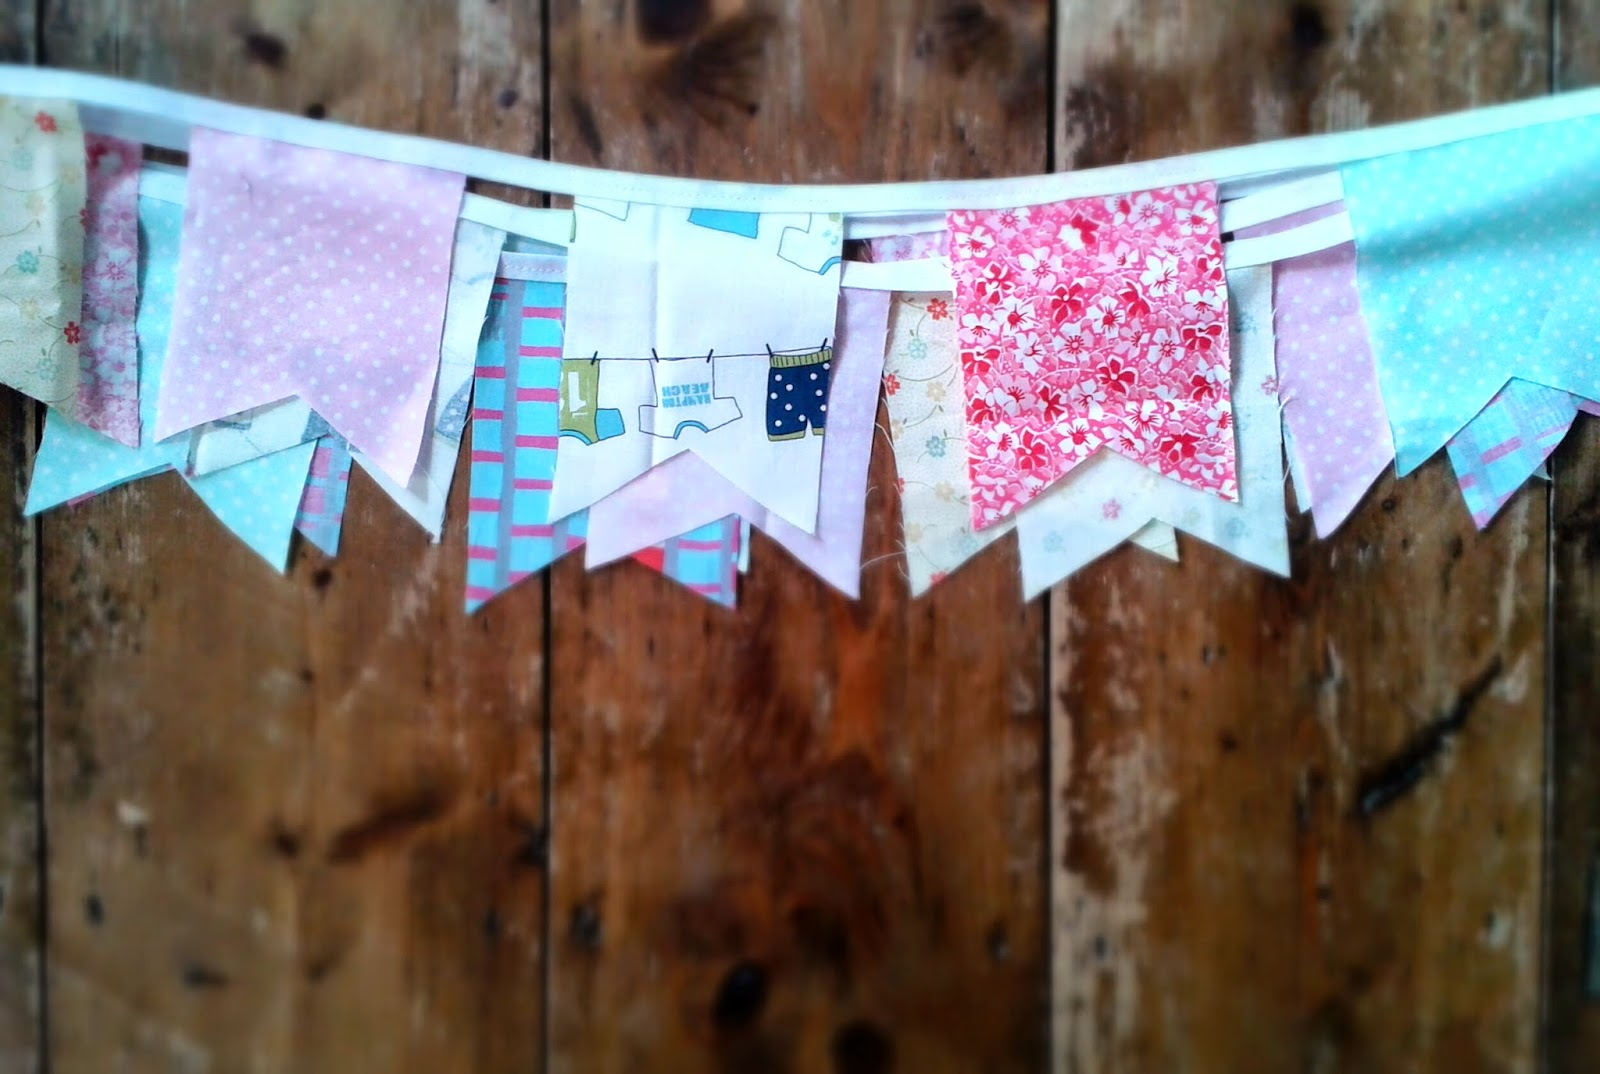 Project 365 day 87 - Bunting for the garden // 76sunflowers